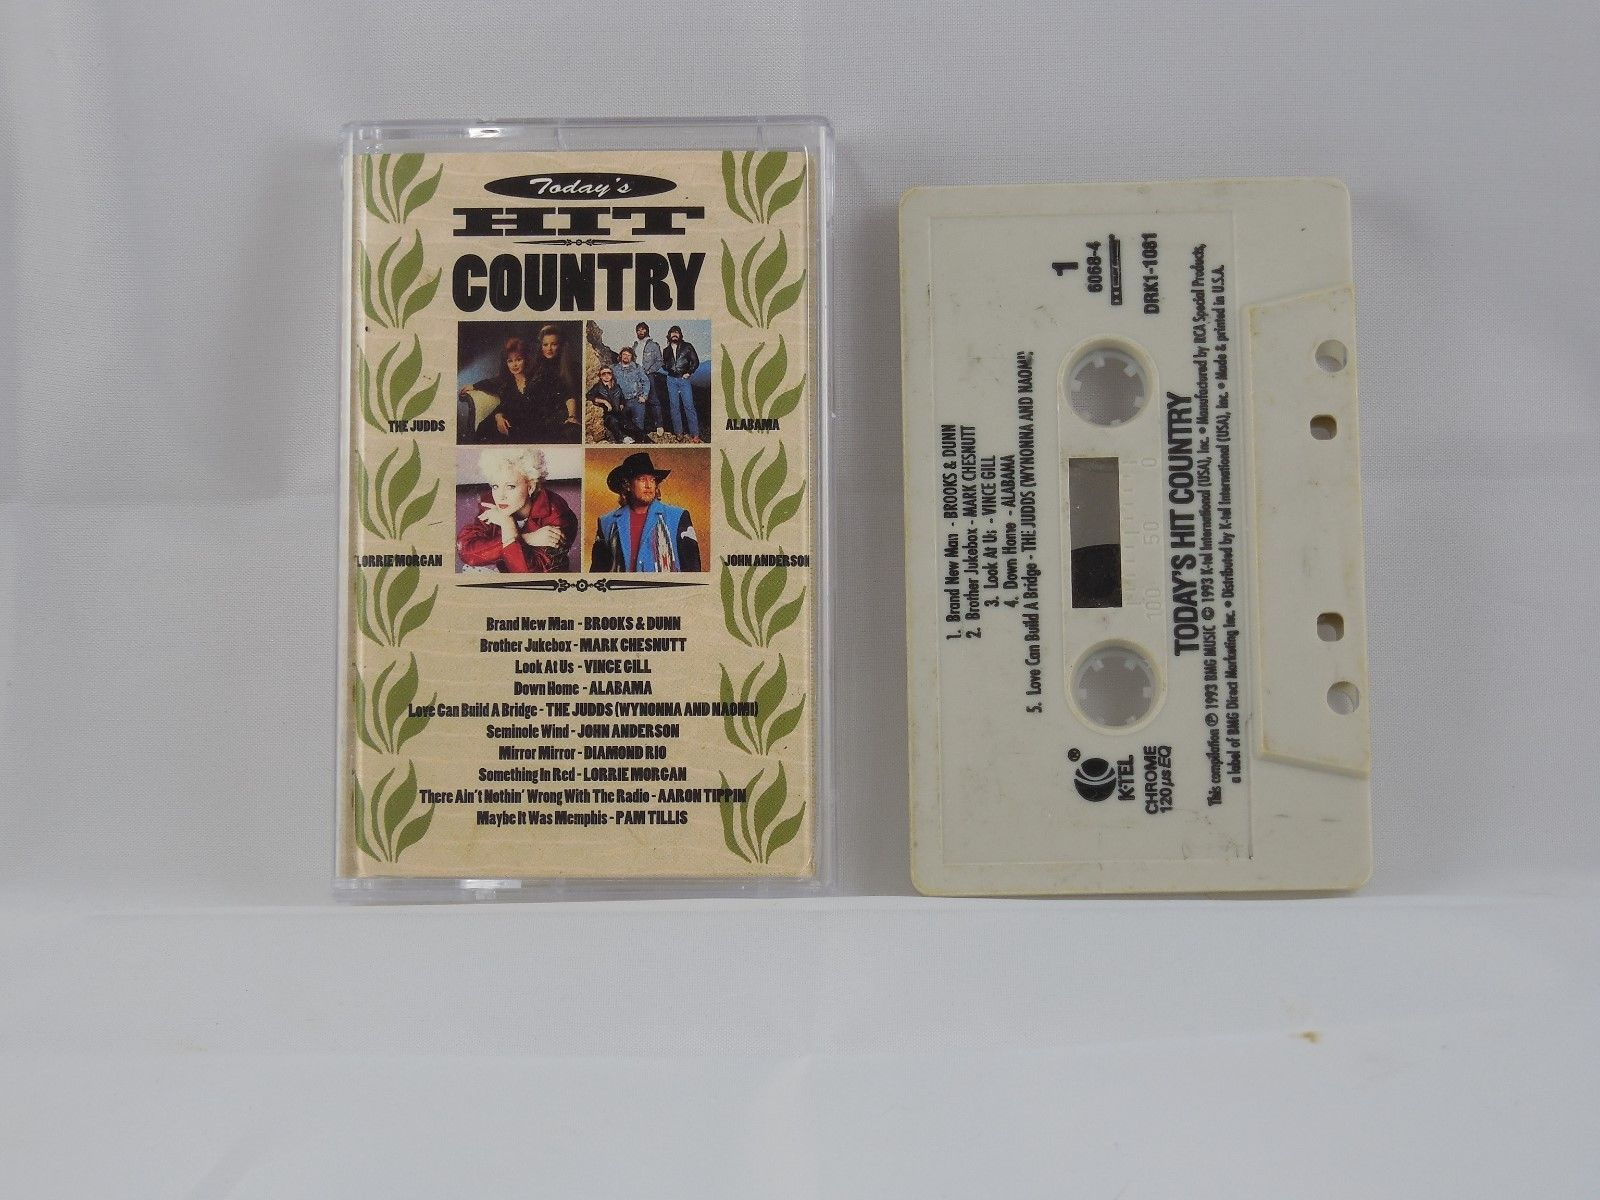 TODAY'S HIT COUNTRY - CASSETTE VARIOUS K-TEL